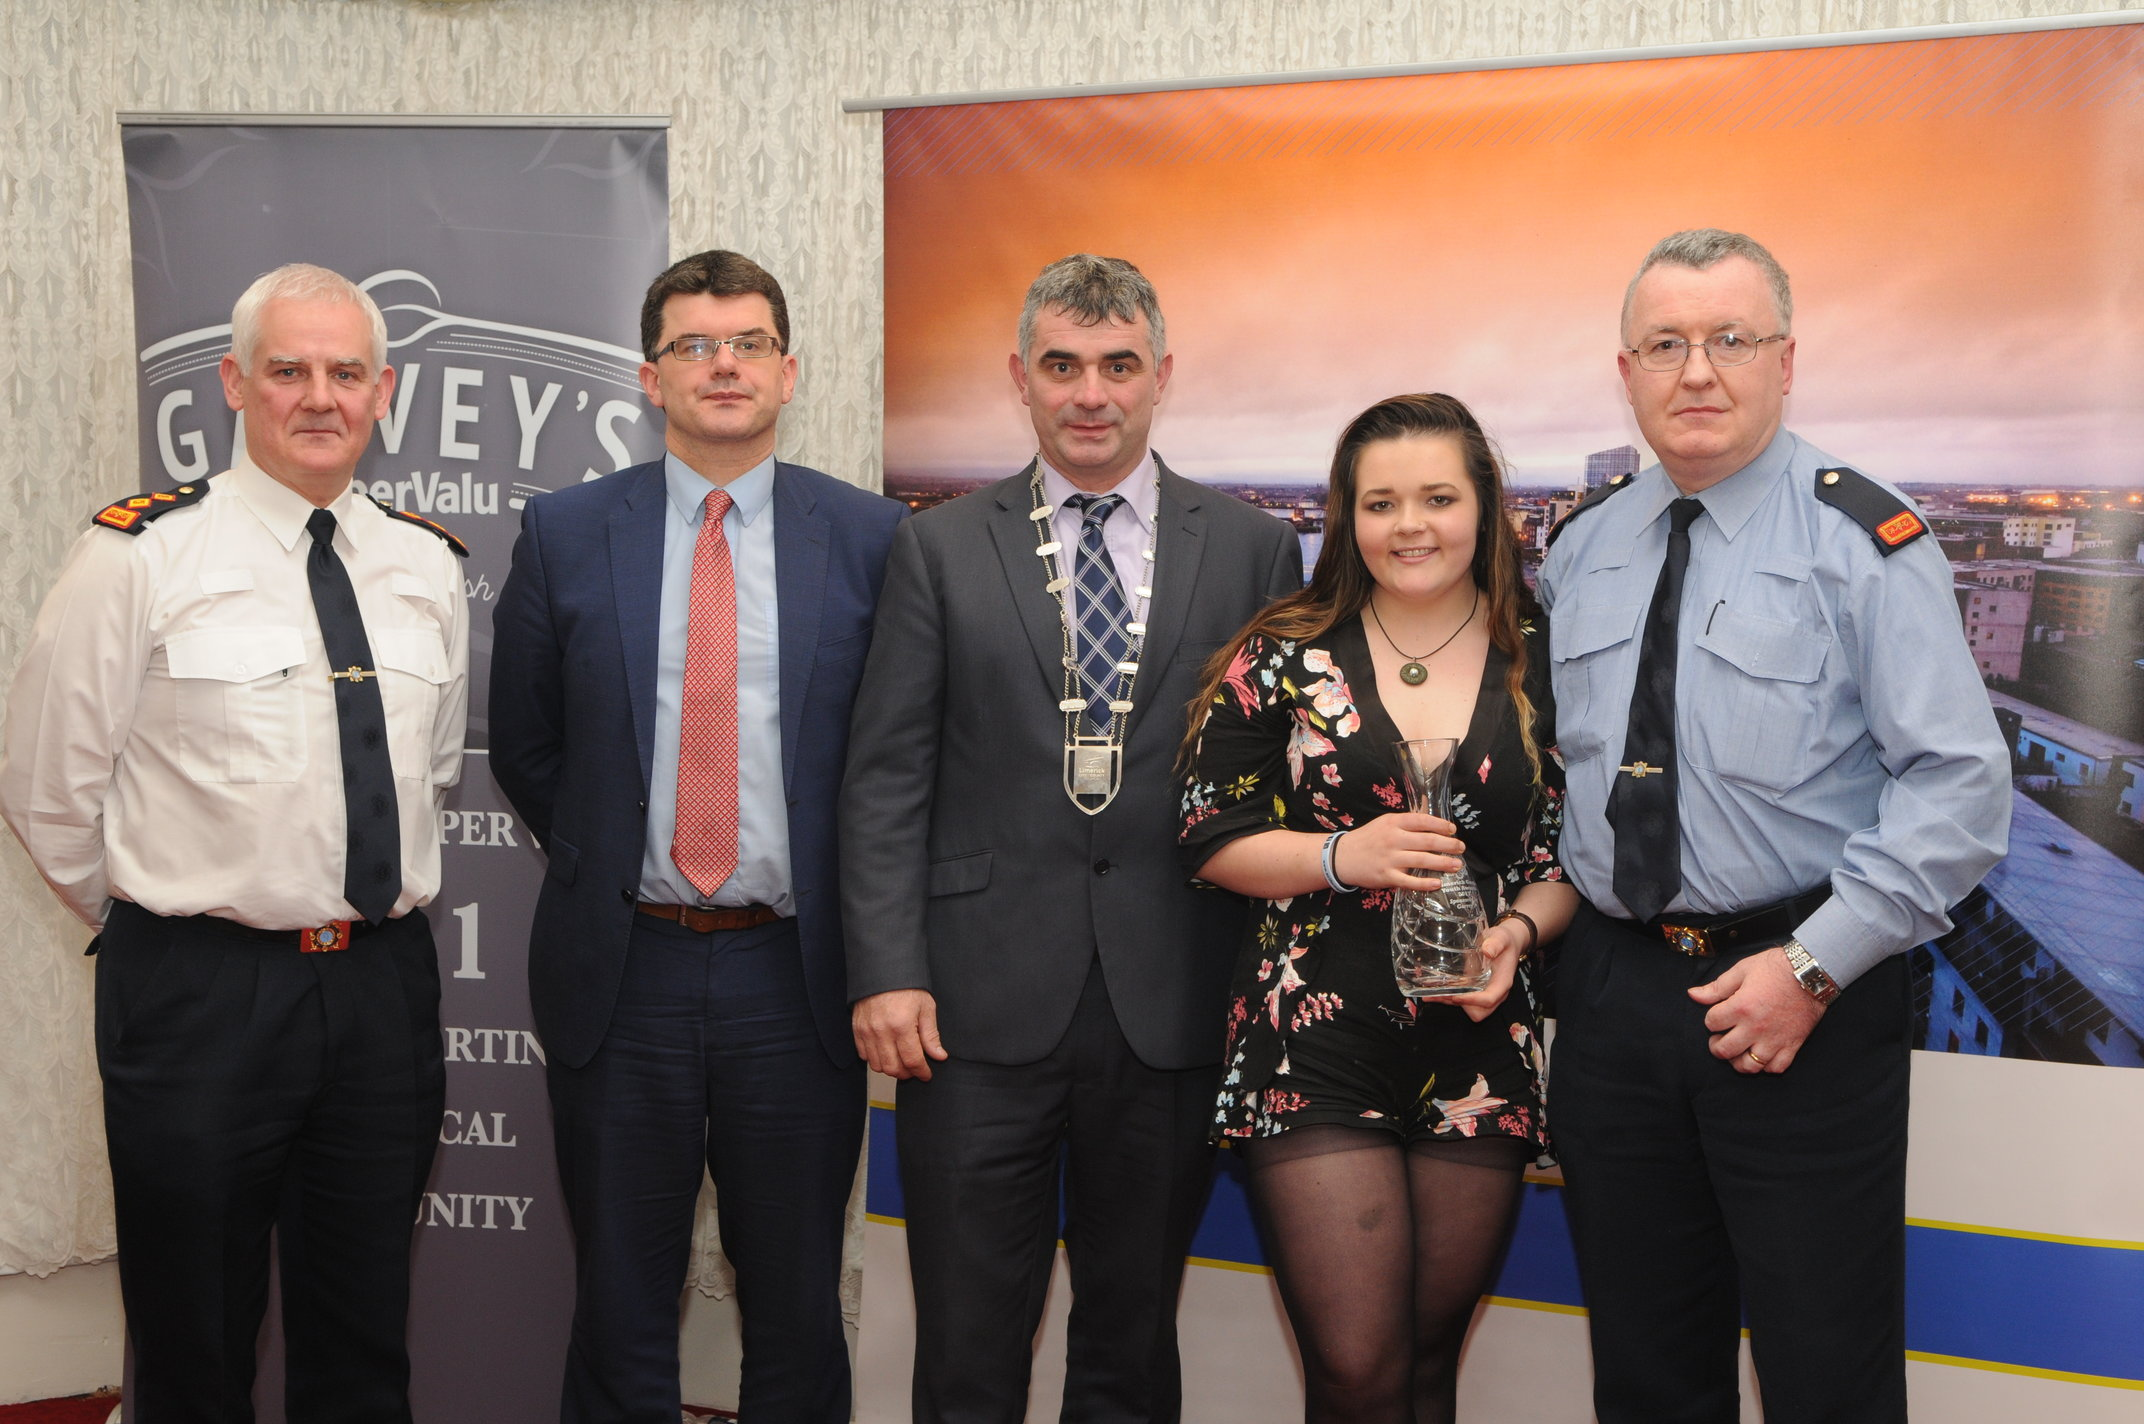 Limerick Garda Youth Awards 2017